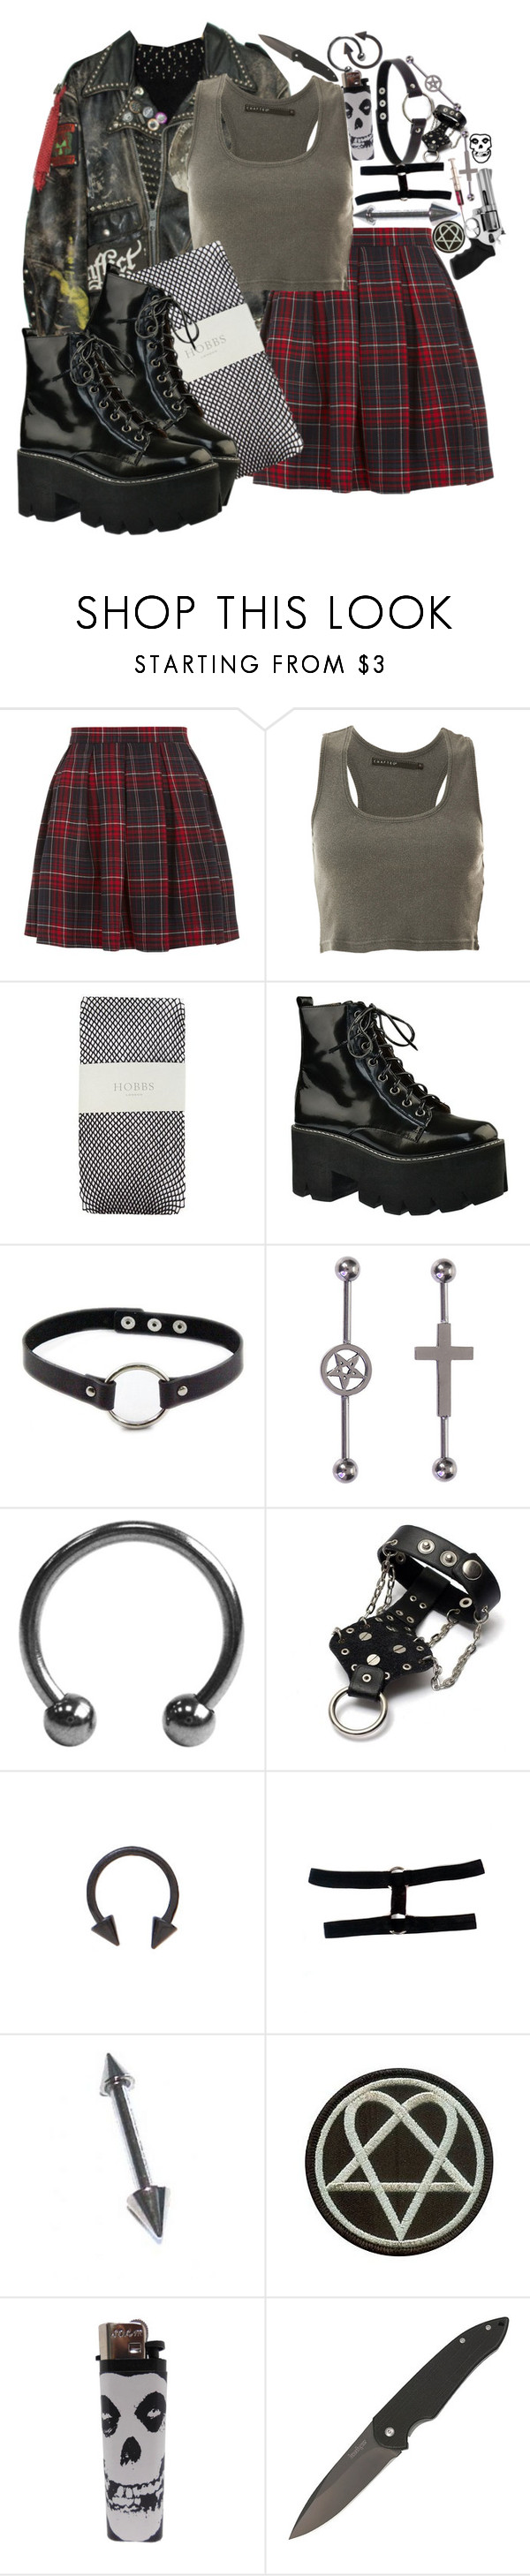 """For You Only"" by bipolarbabe ❤ liked on Polyvore featuring Crafted, Jeffrey Campbell, Retrò and Revolver"